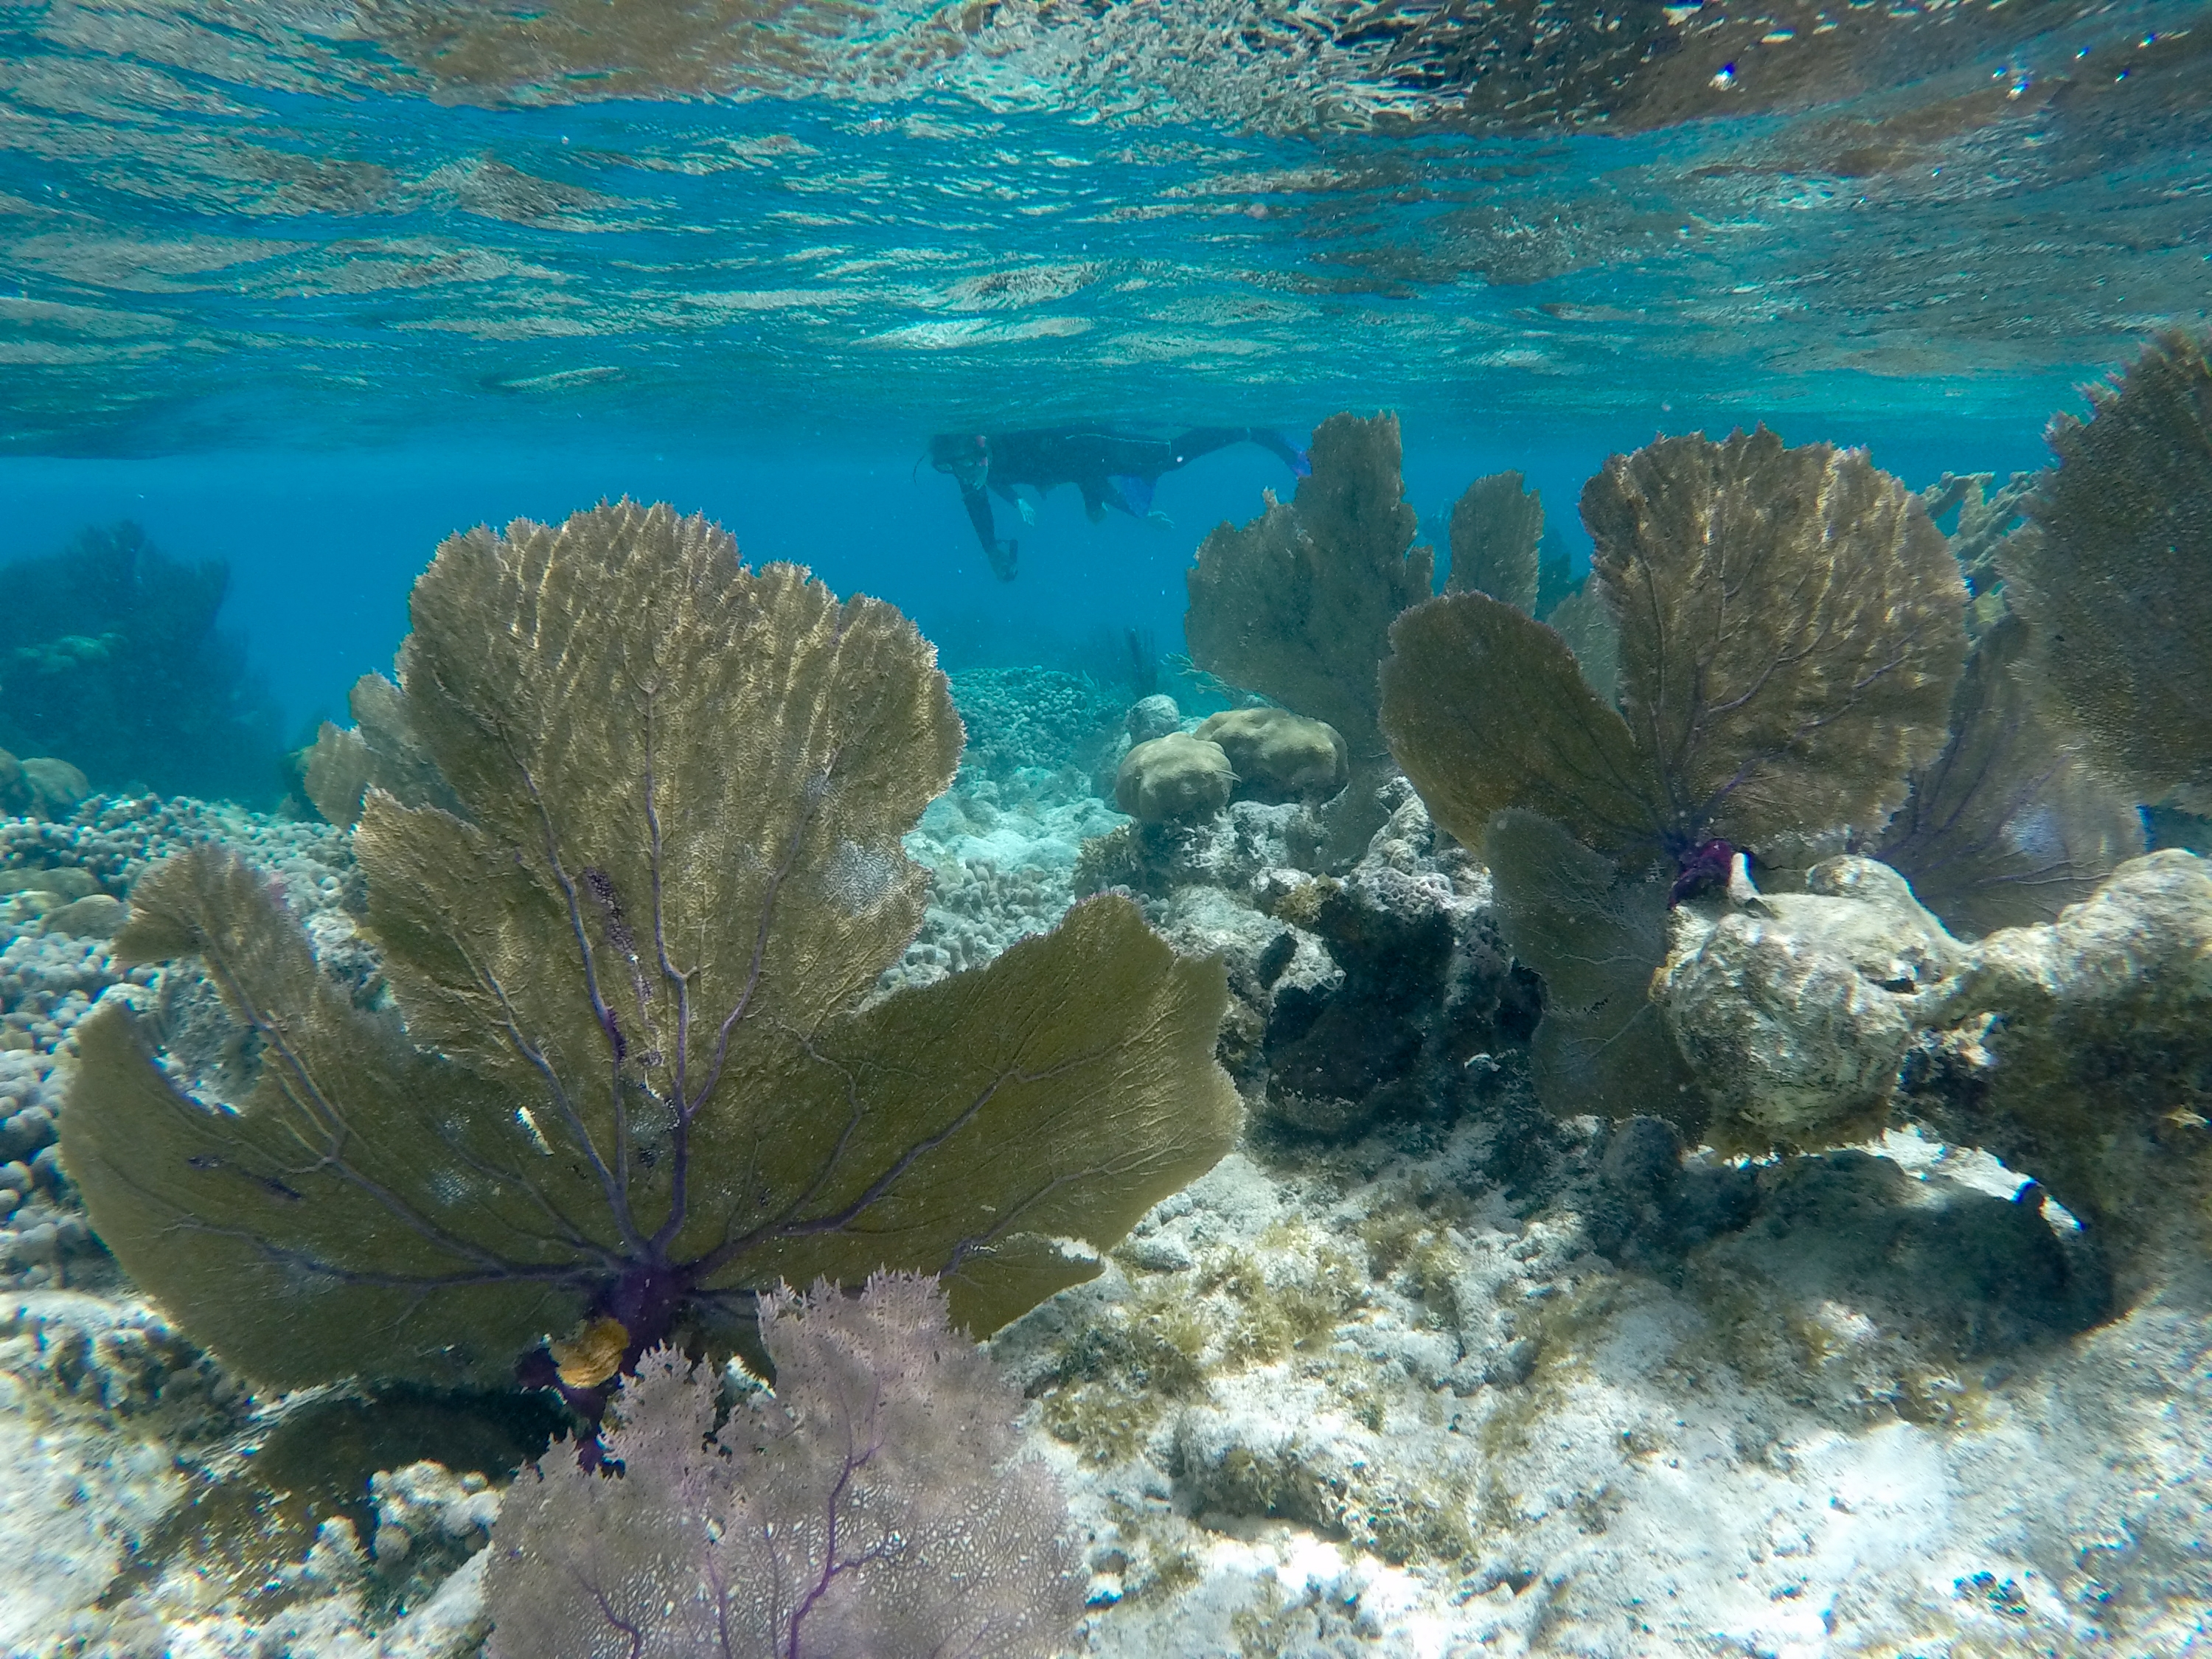 Underwater photo of coral reefs